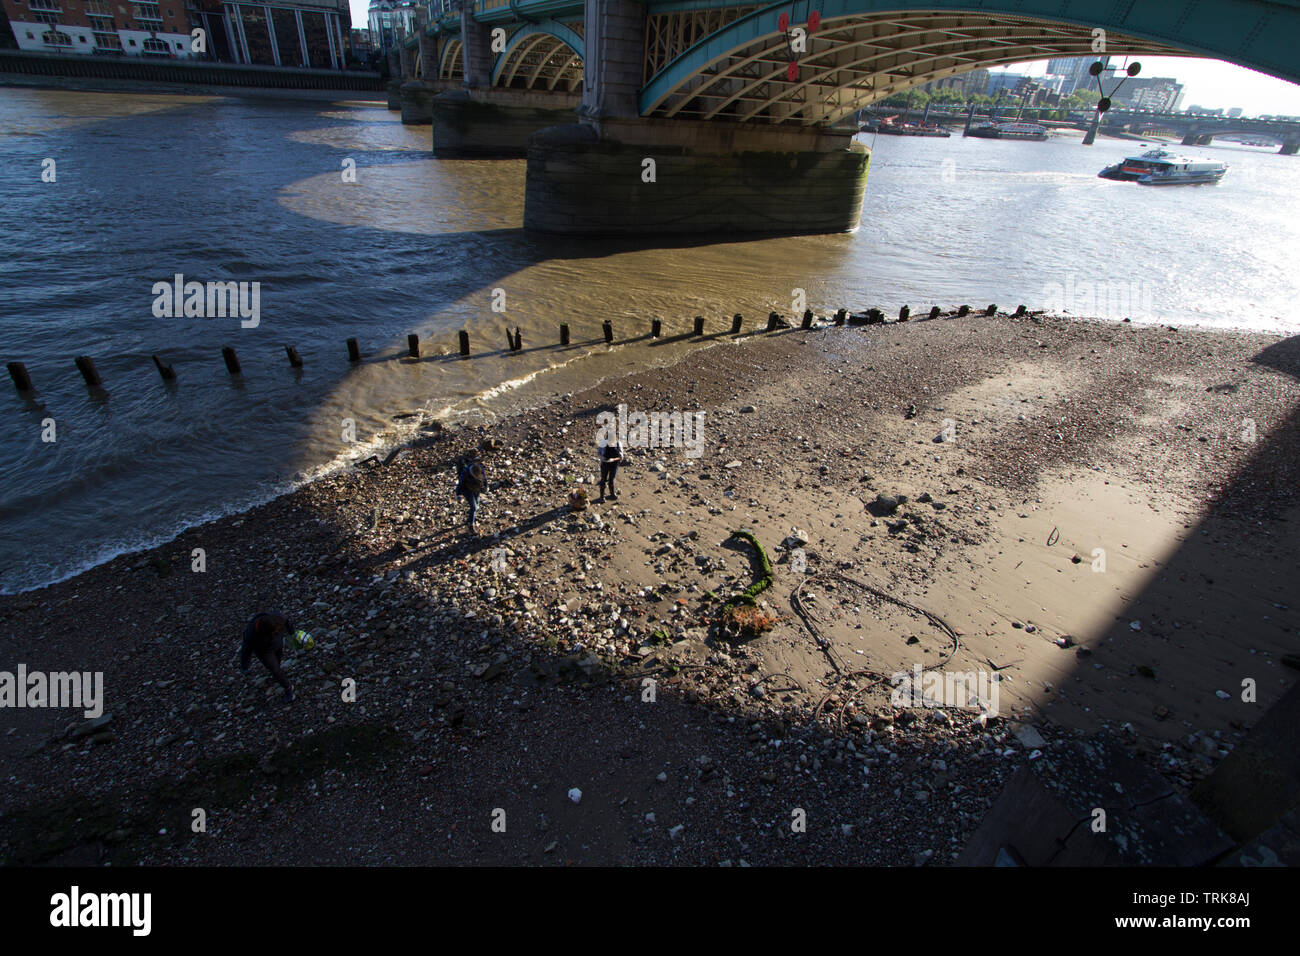 Mudlarkers searching the bank of the River Thames under Southwark Bridge - Stock Image